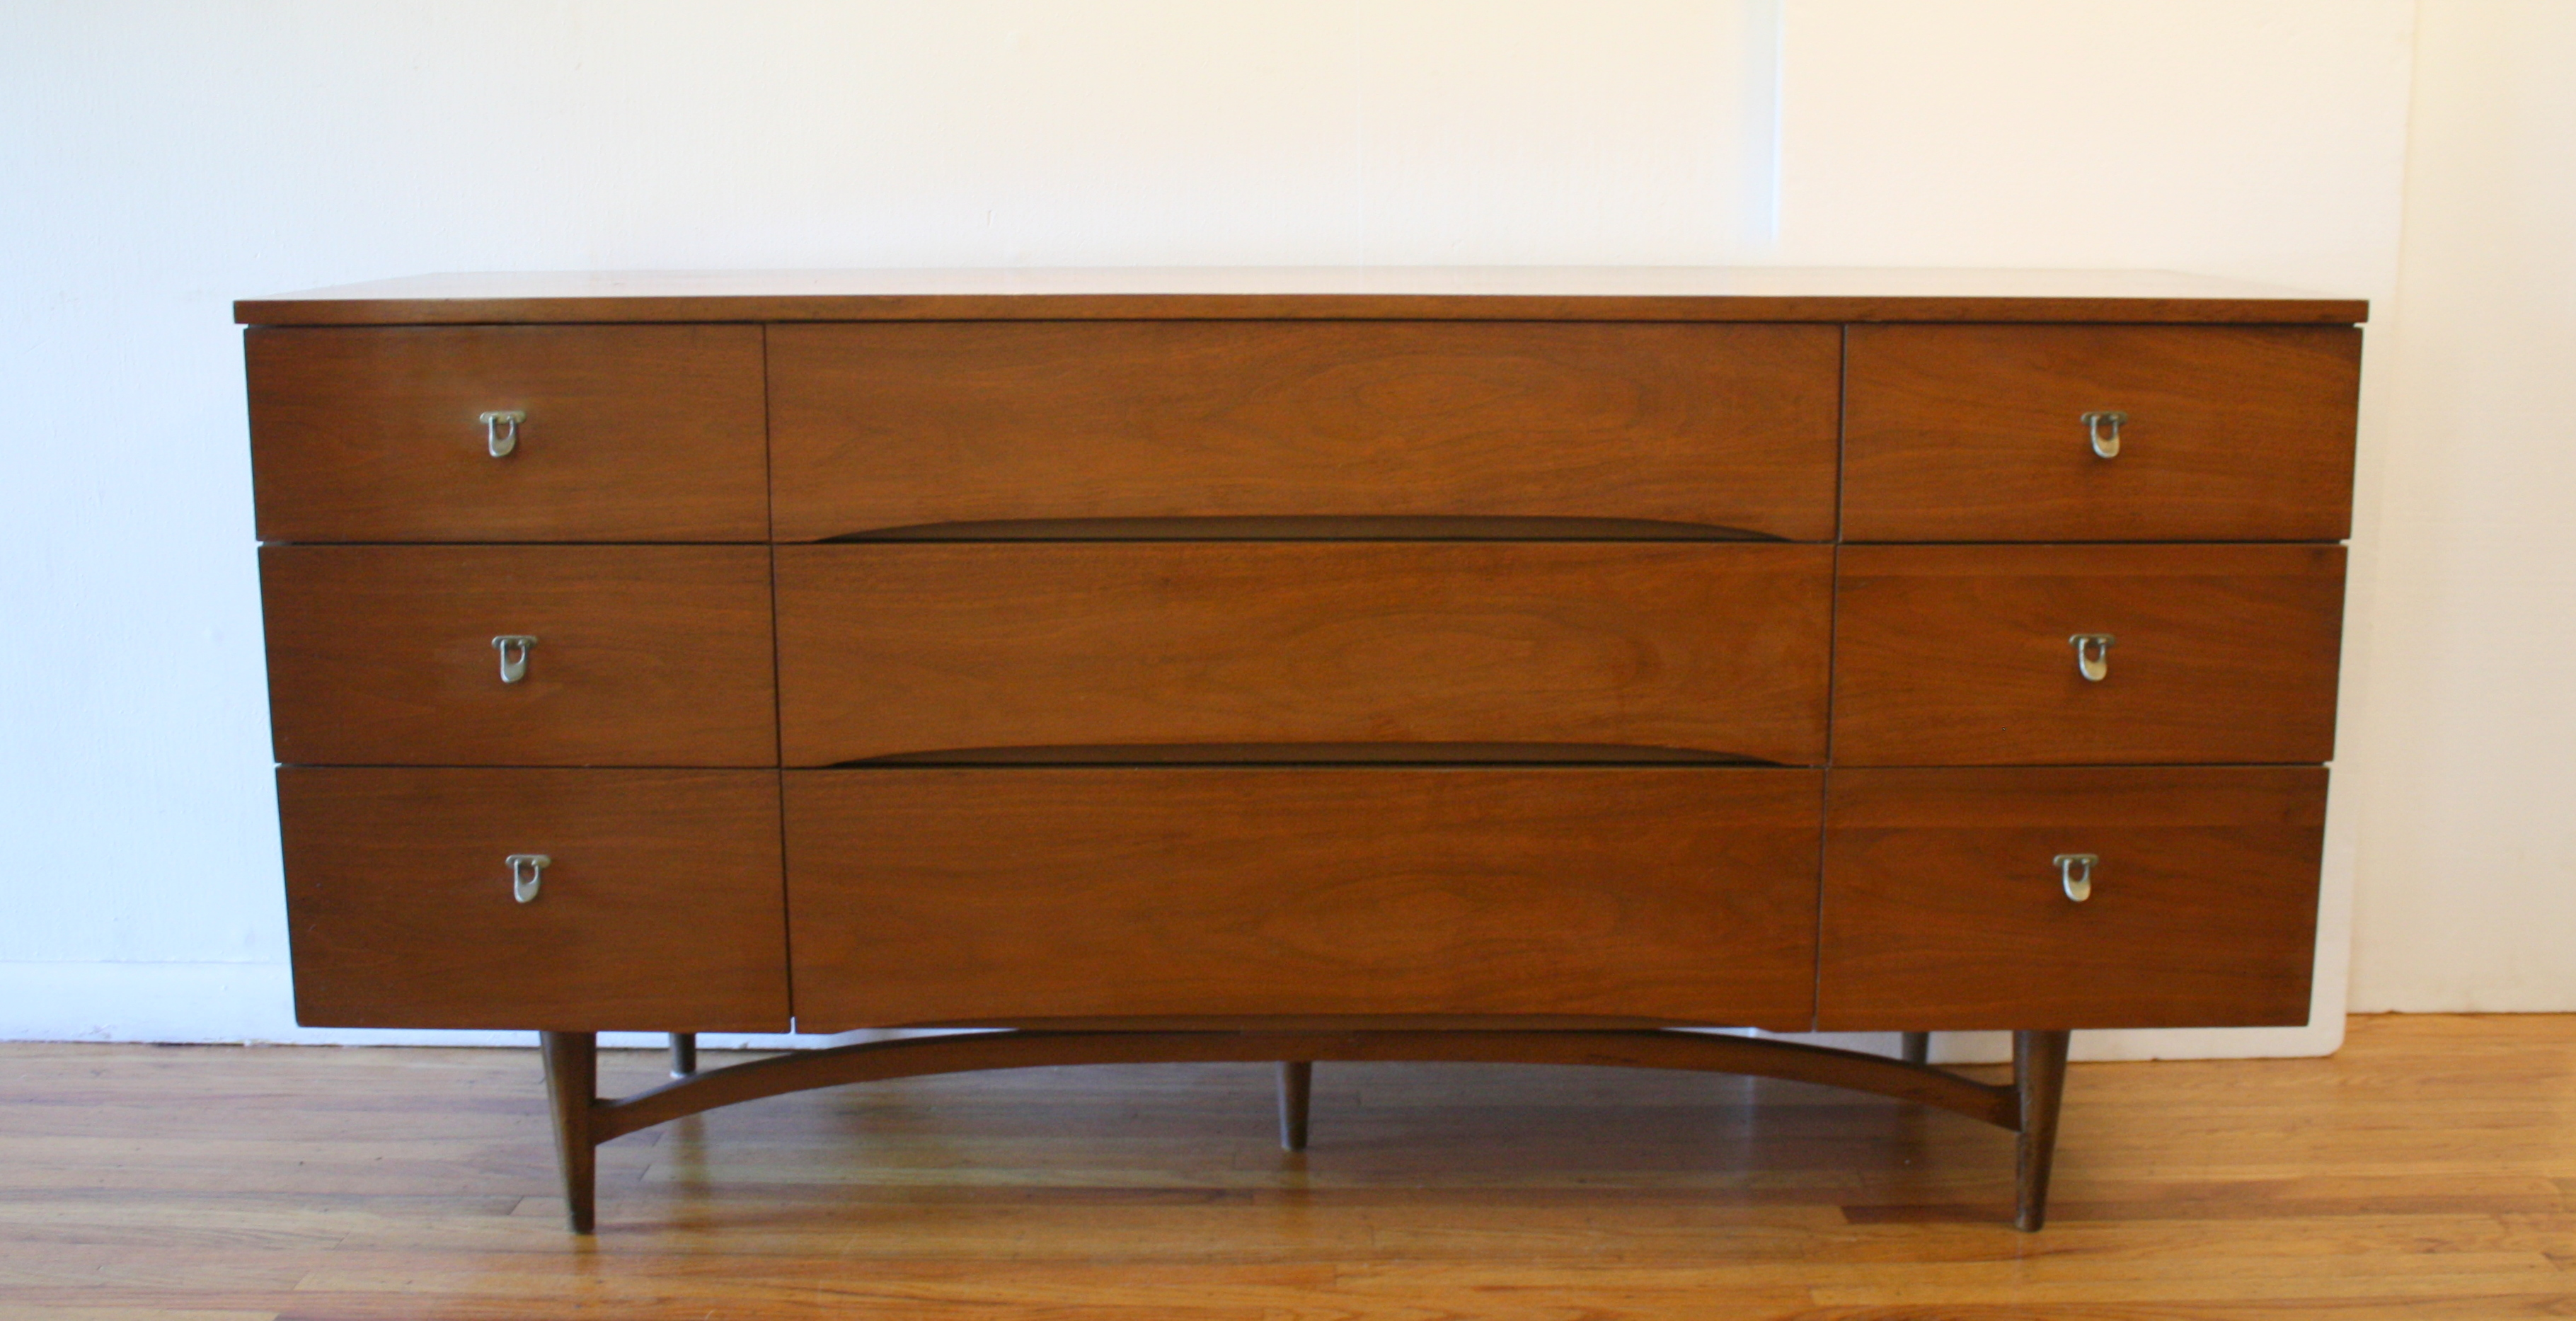 mcm low dresser credenza with arched base 1.JPG